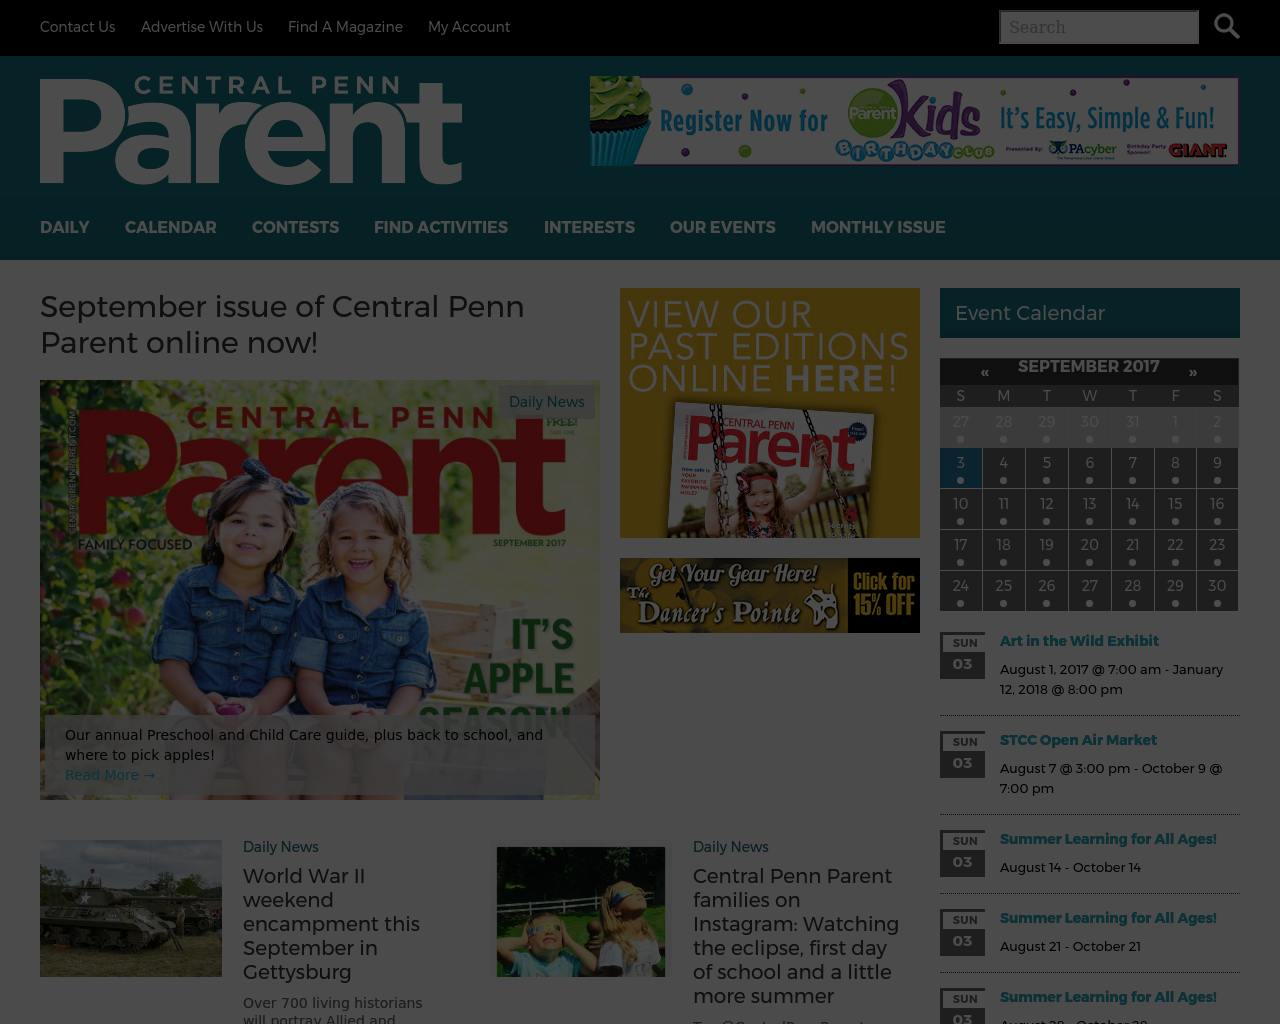 Central-Penn-Parent-Advertising-Reviews-Pricing